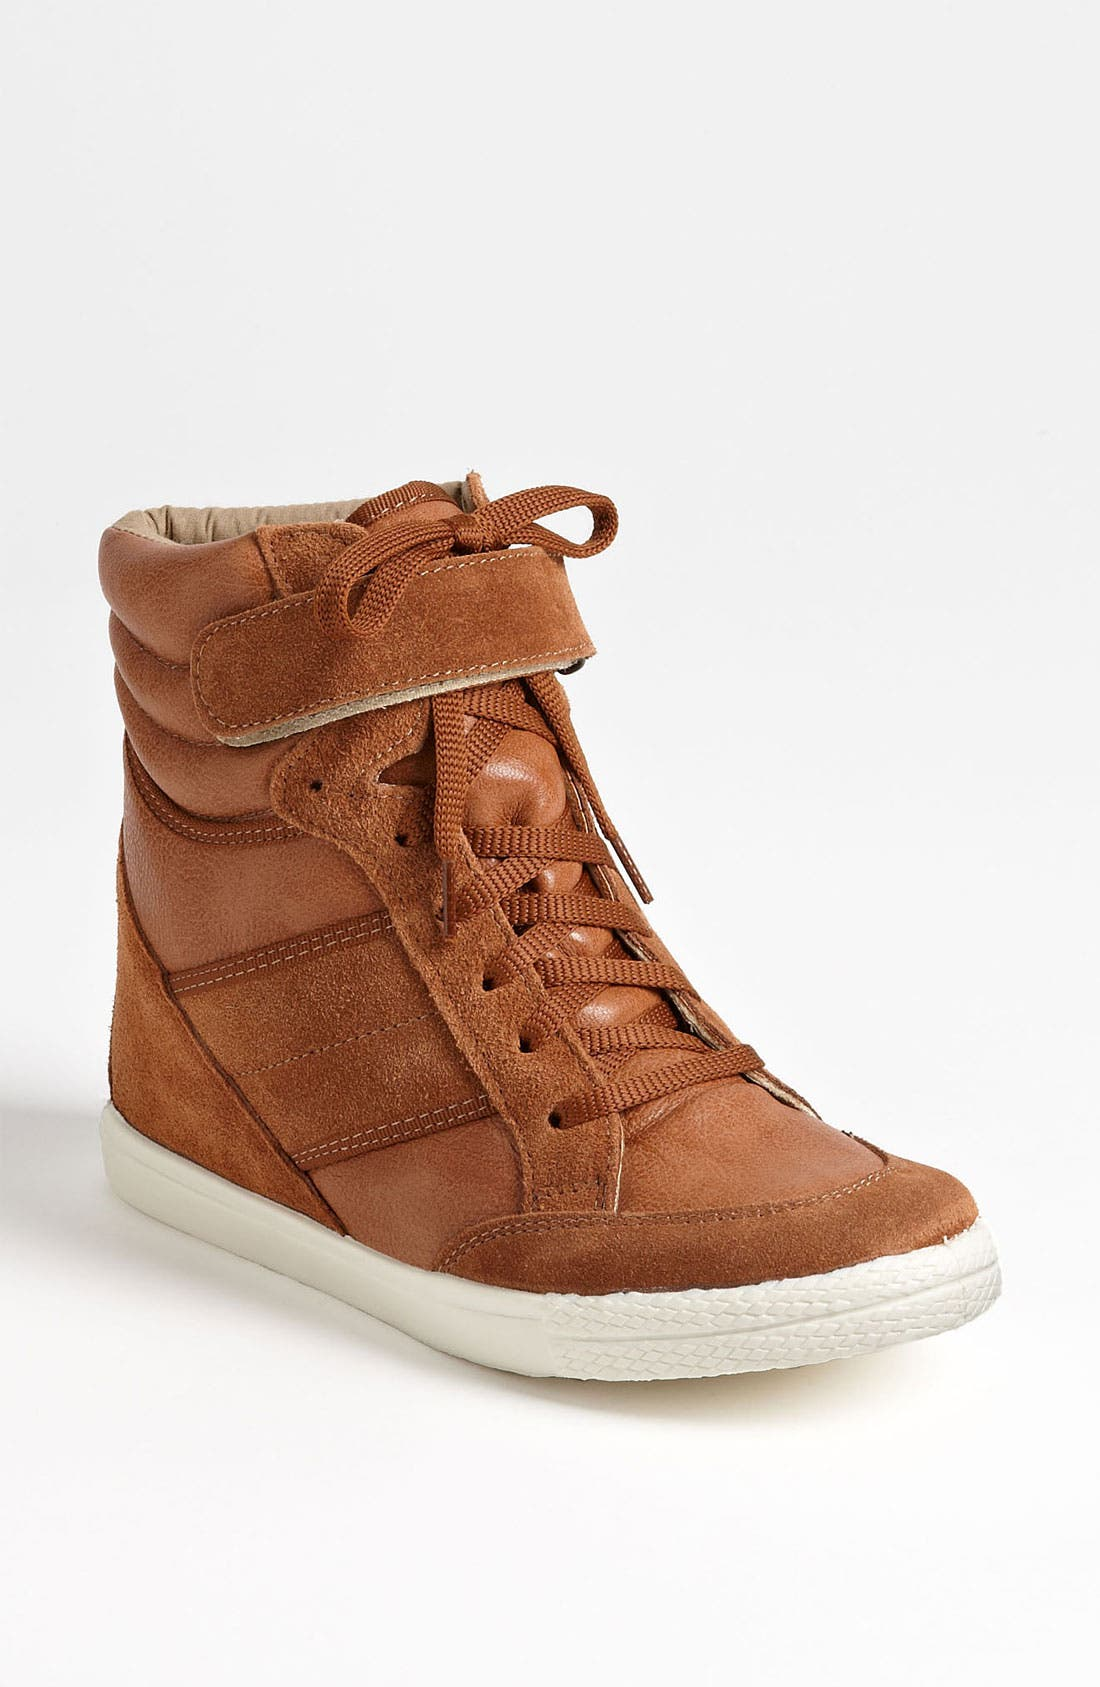 Alternate Image 1 Selected - Topshop 'Aerobic2' Wedge Sneaker